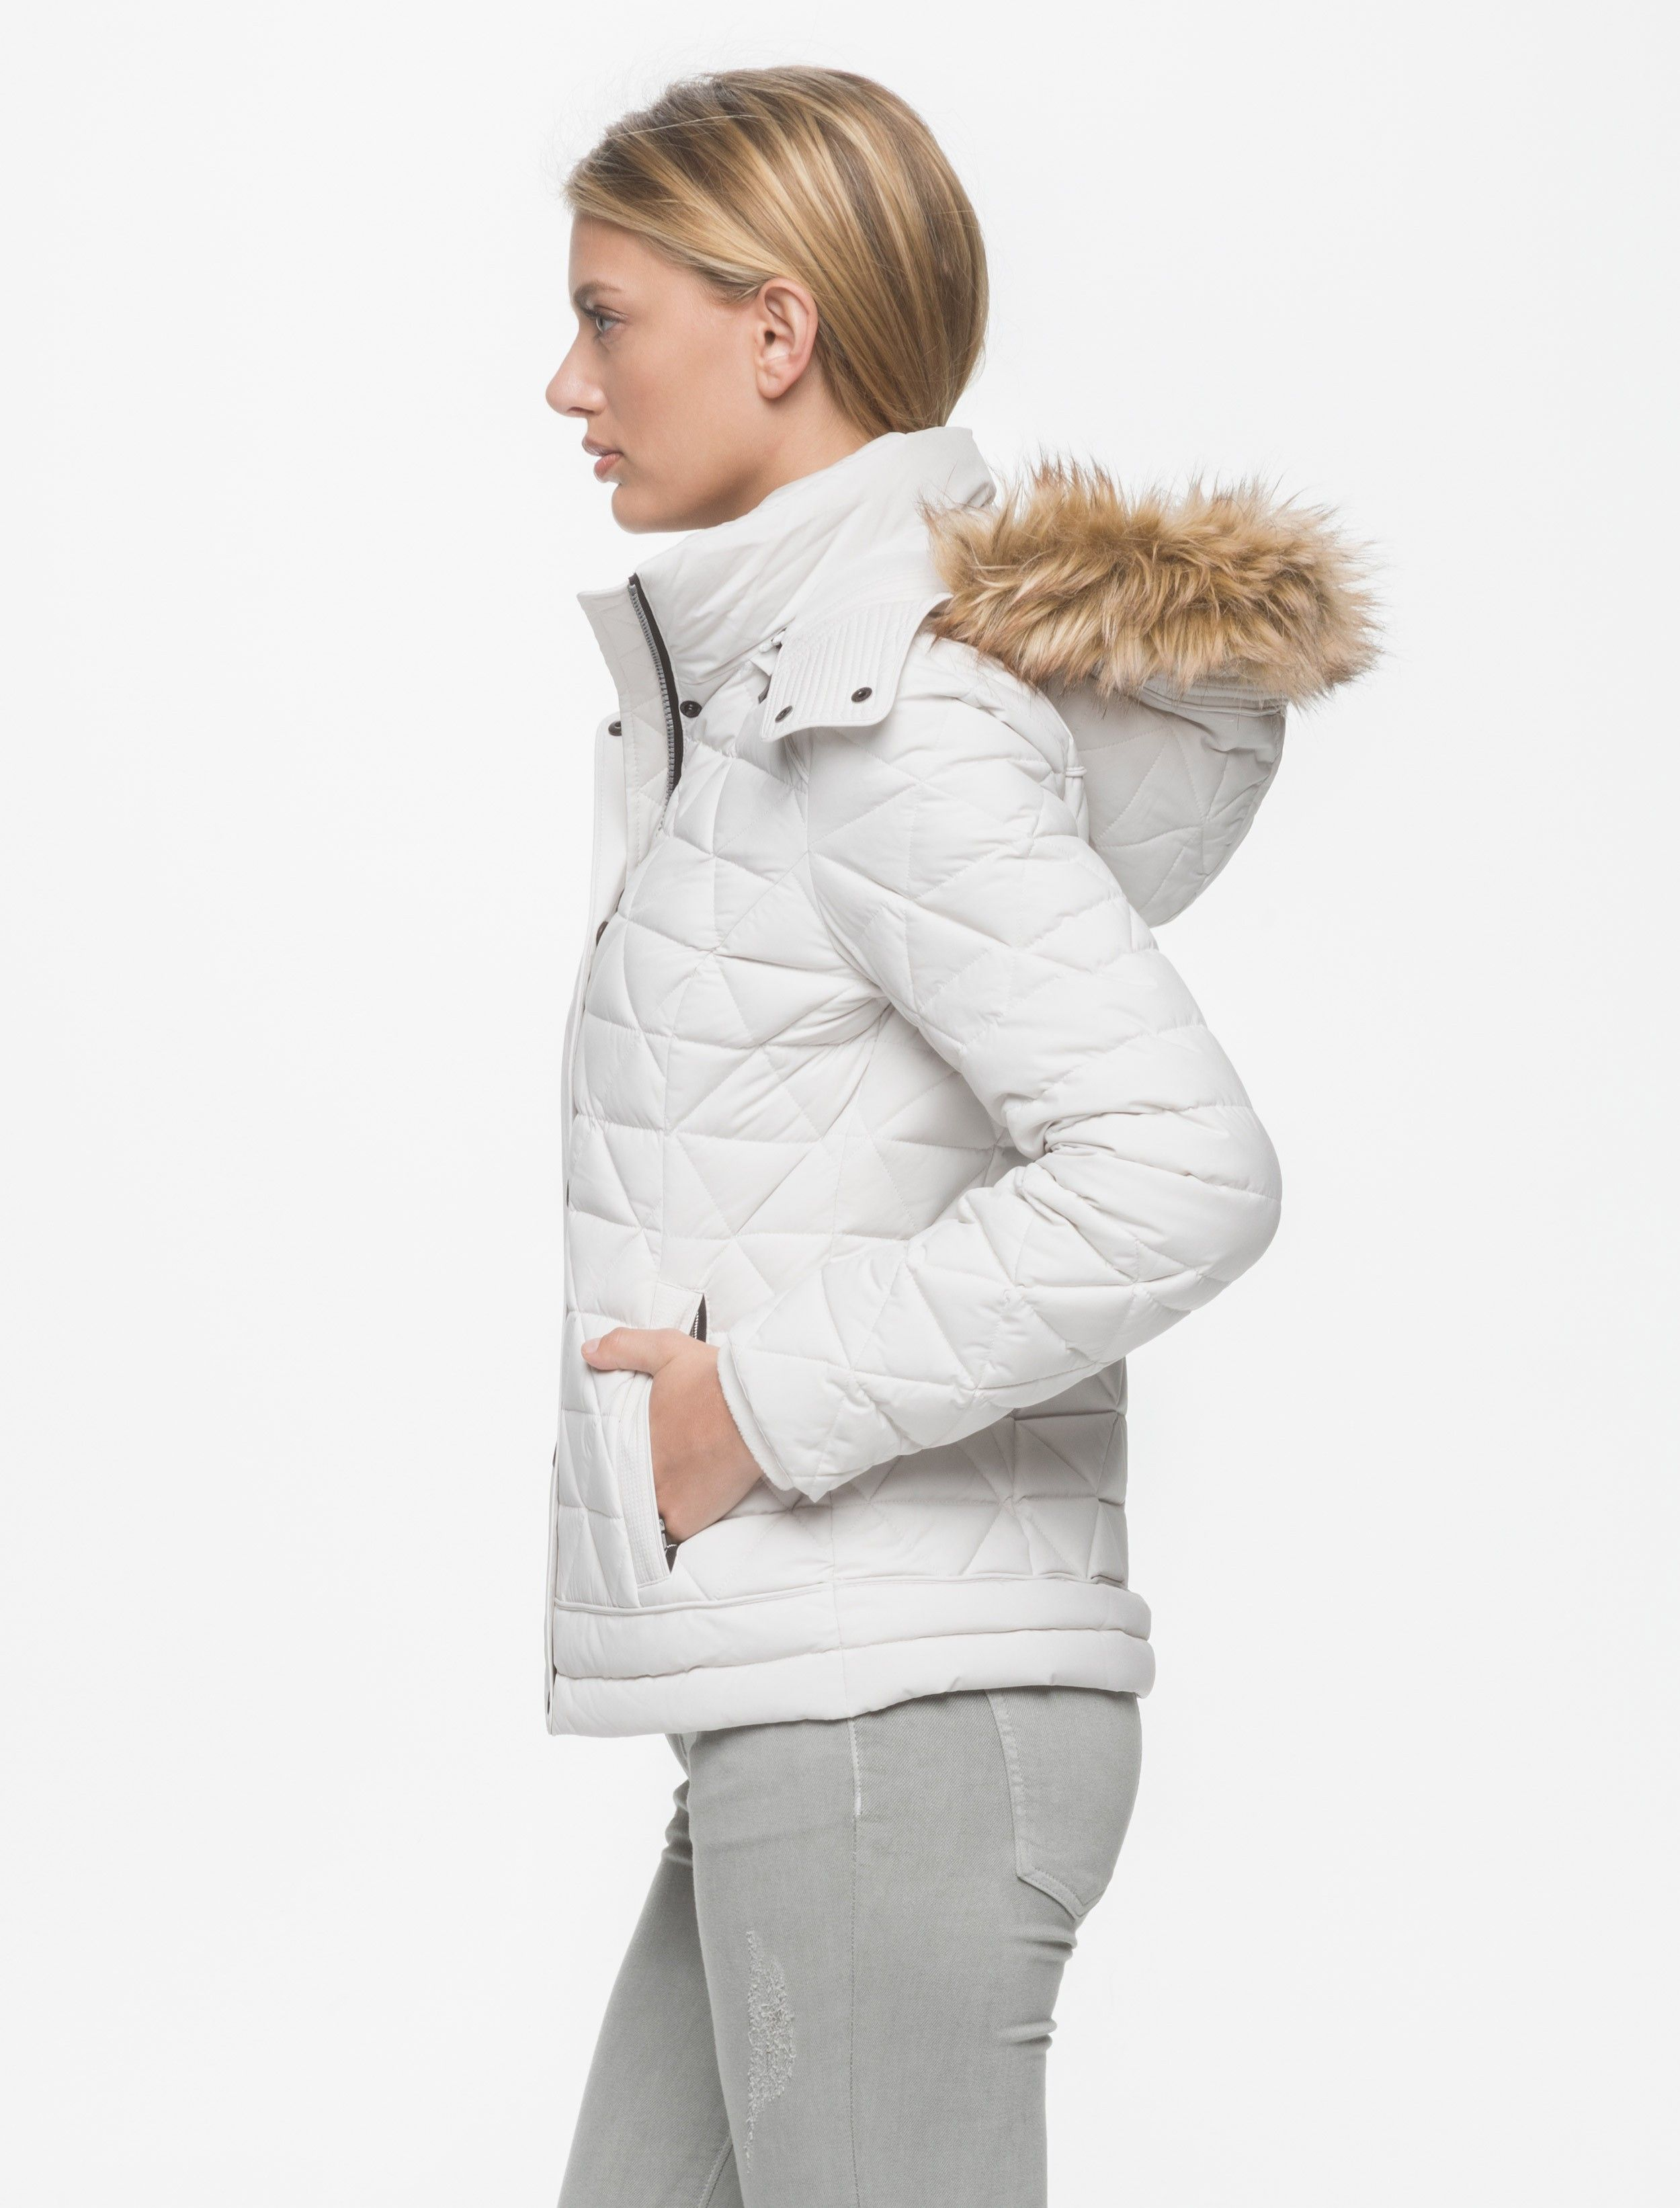 The Tess puffer coat is made from a durable, coated water-repellent fabric that stretches for a c...